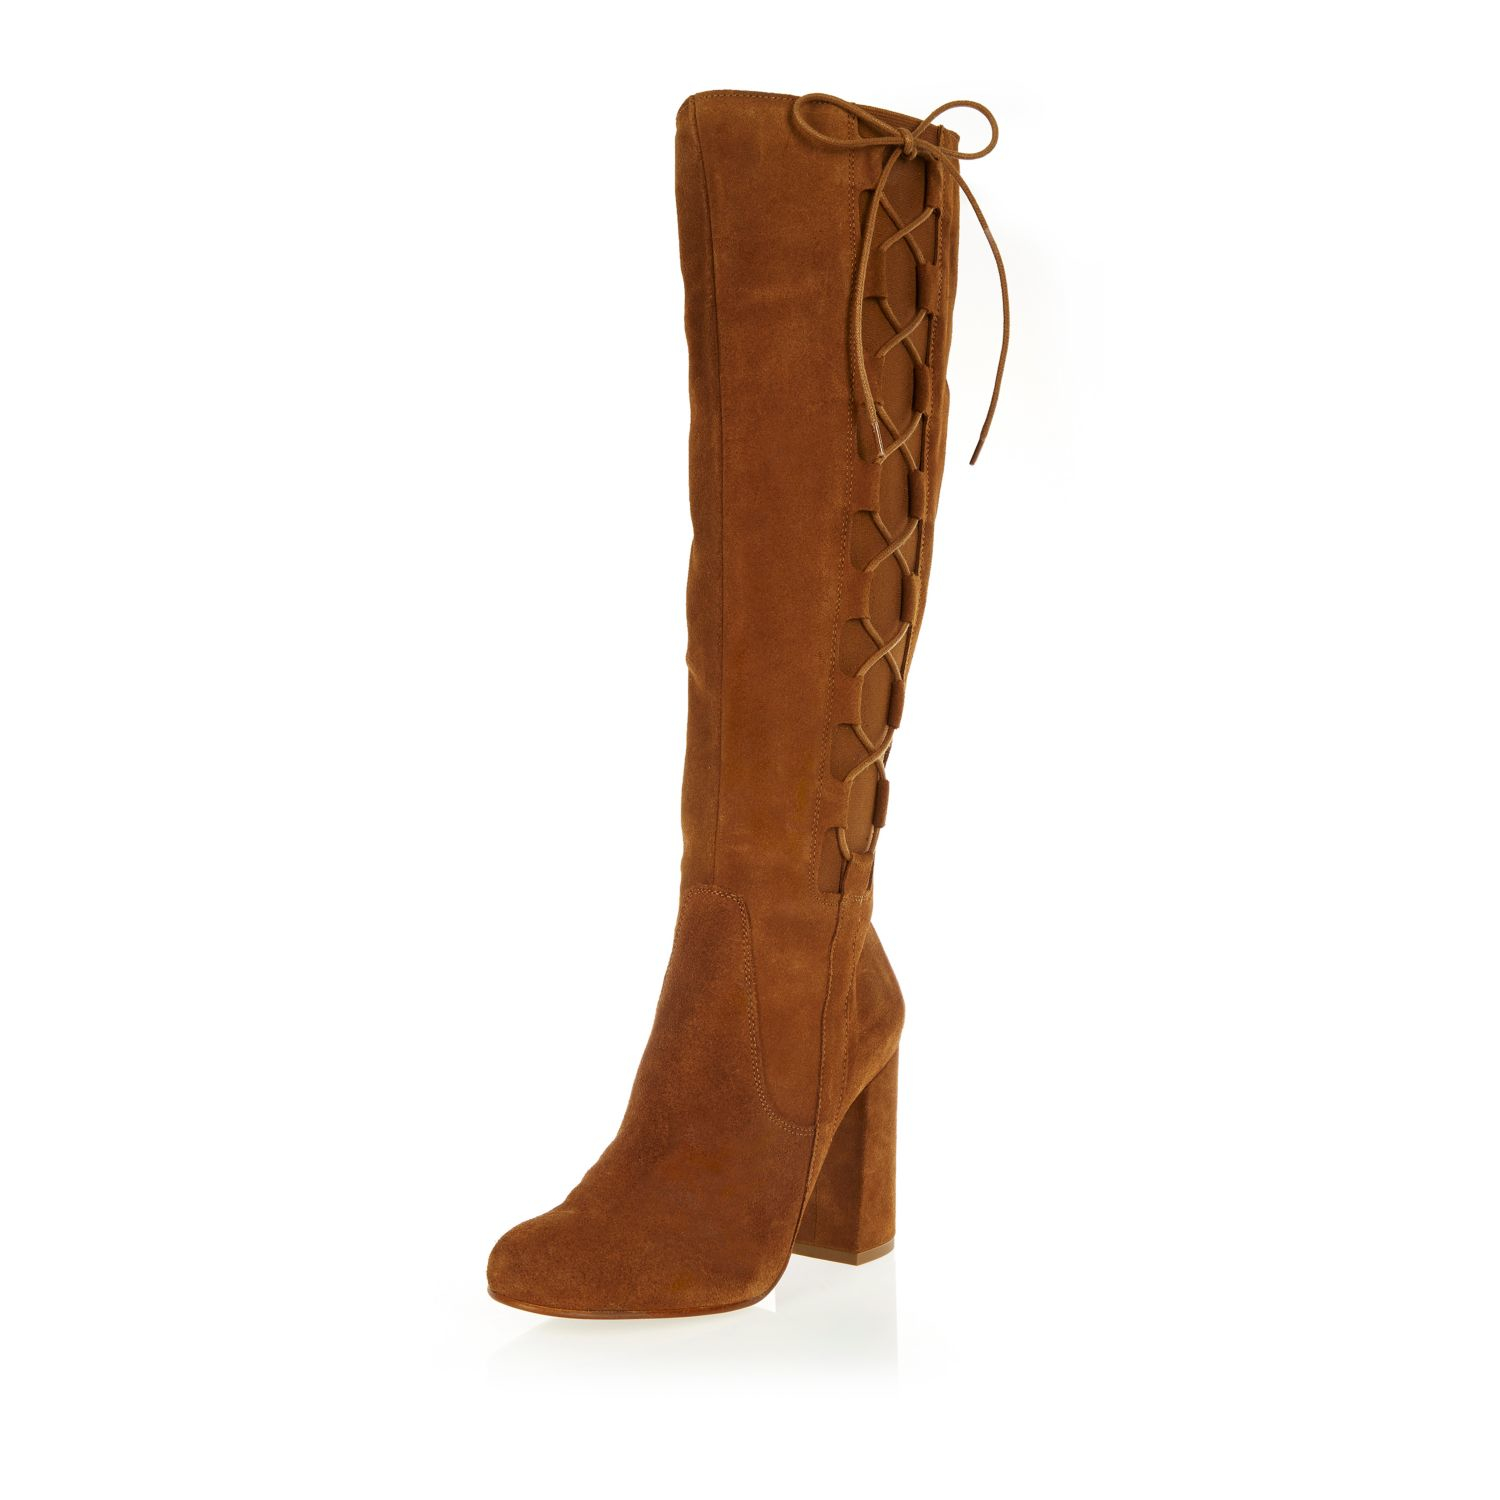 River island Tan Suede Knee High Lace-up Boots in Brown | Lyst